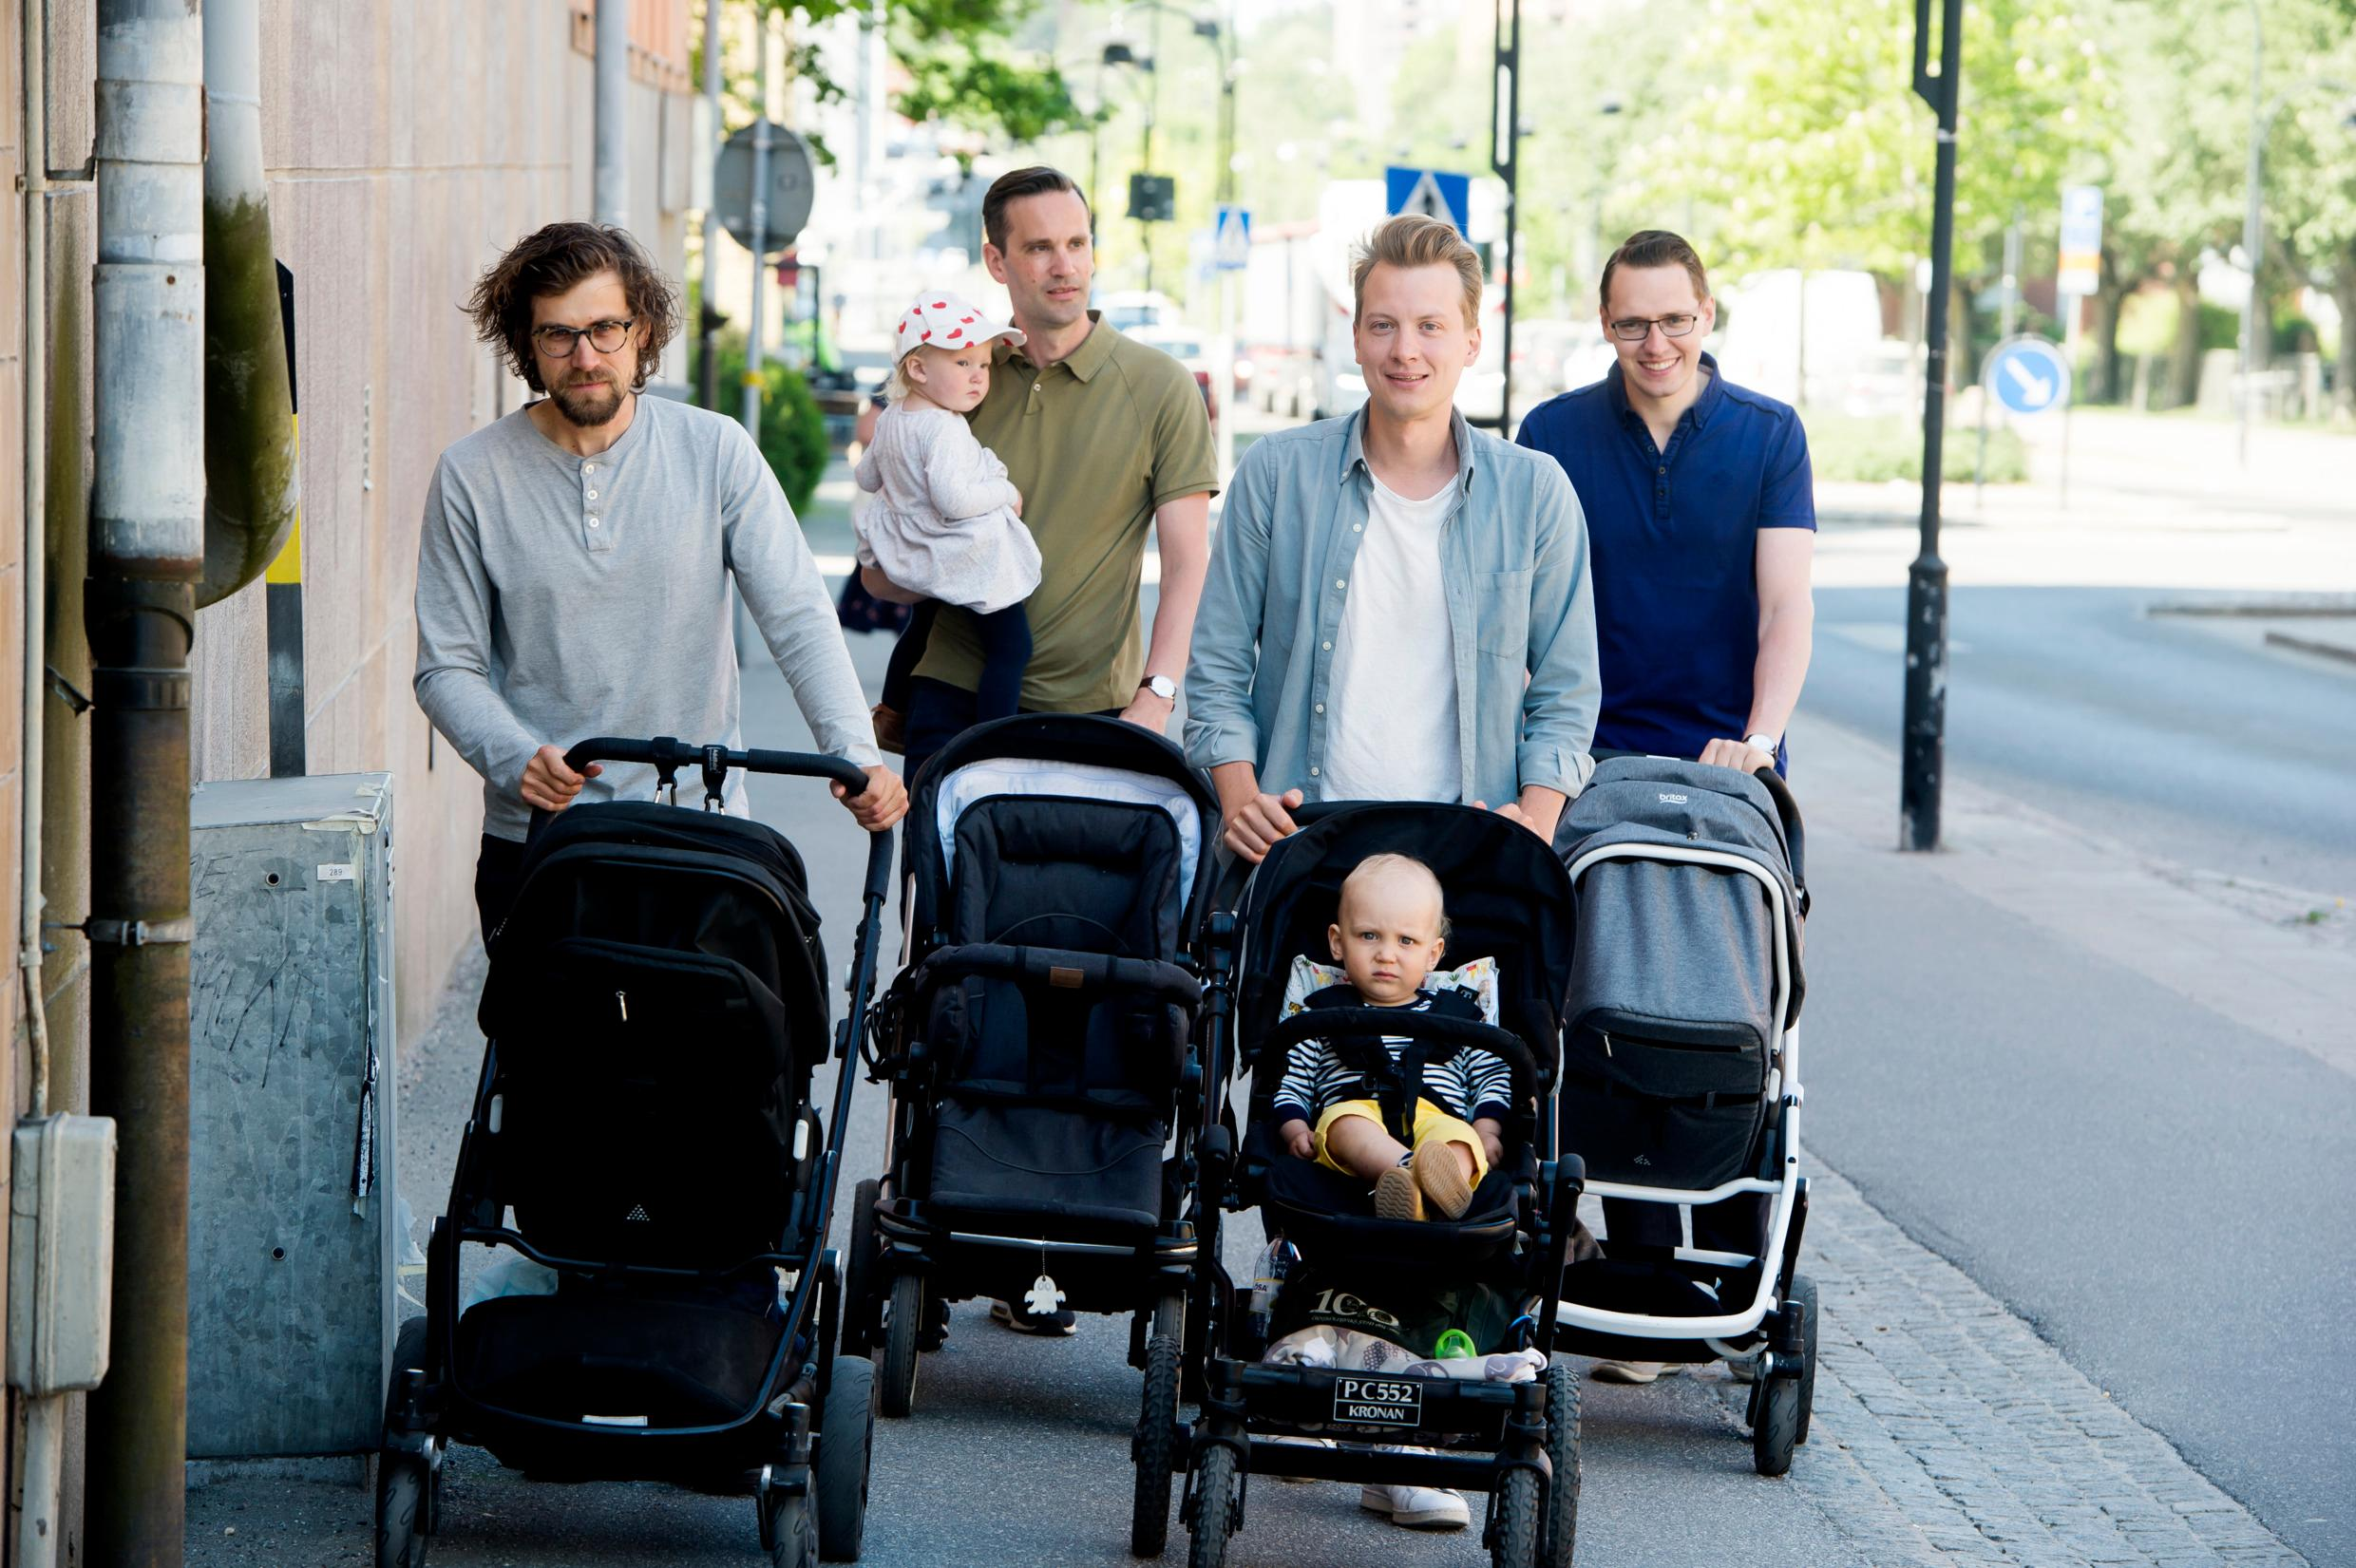 Four men with baby strollers walk down the street. Each man has a baby stroller.